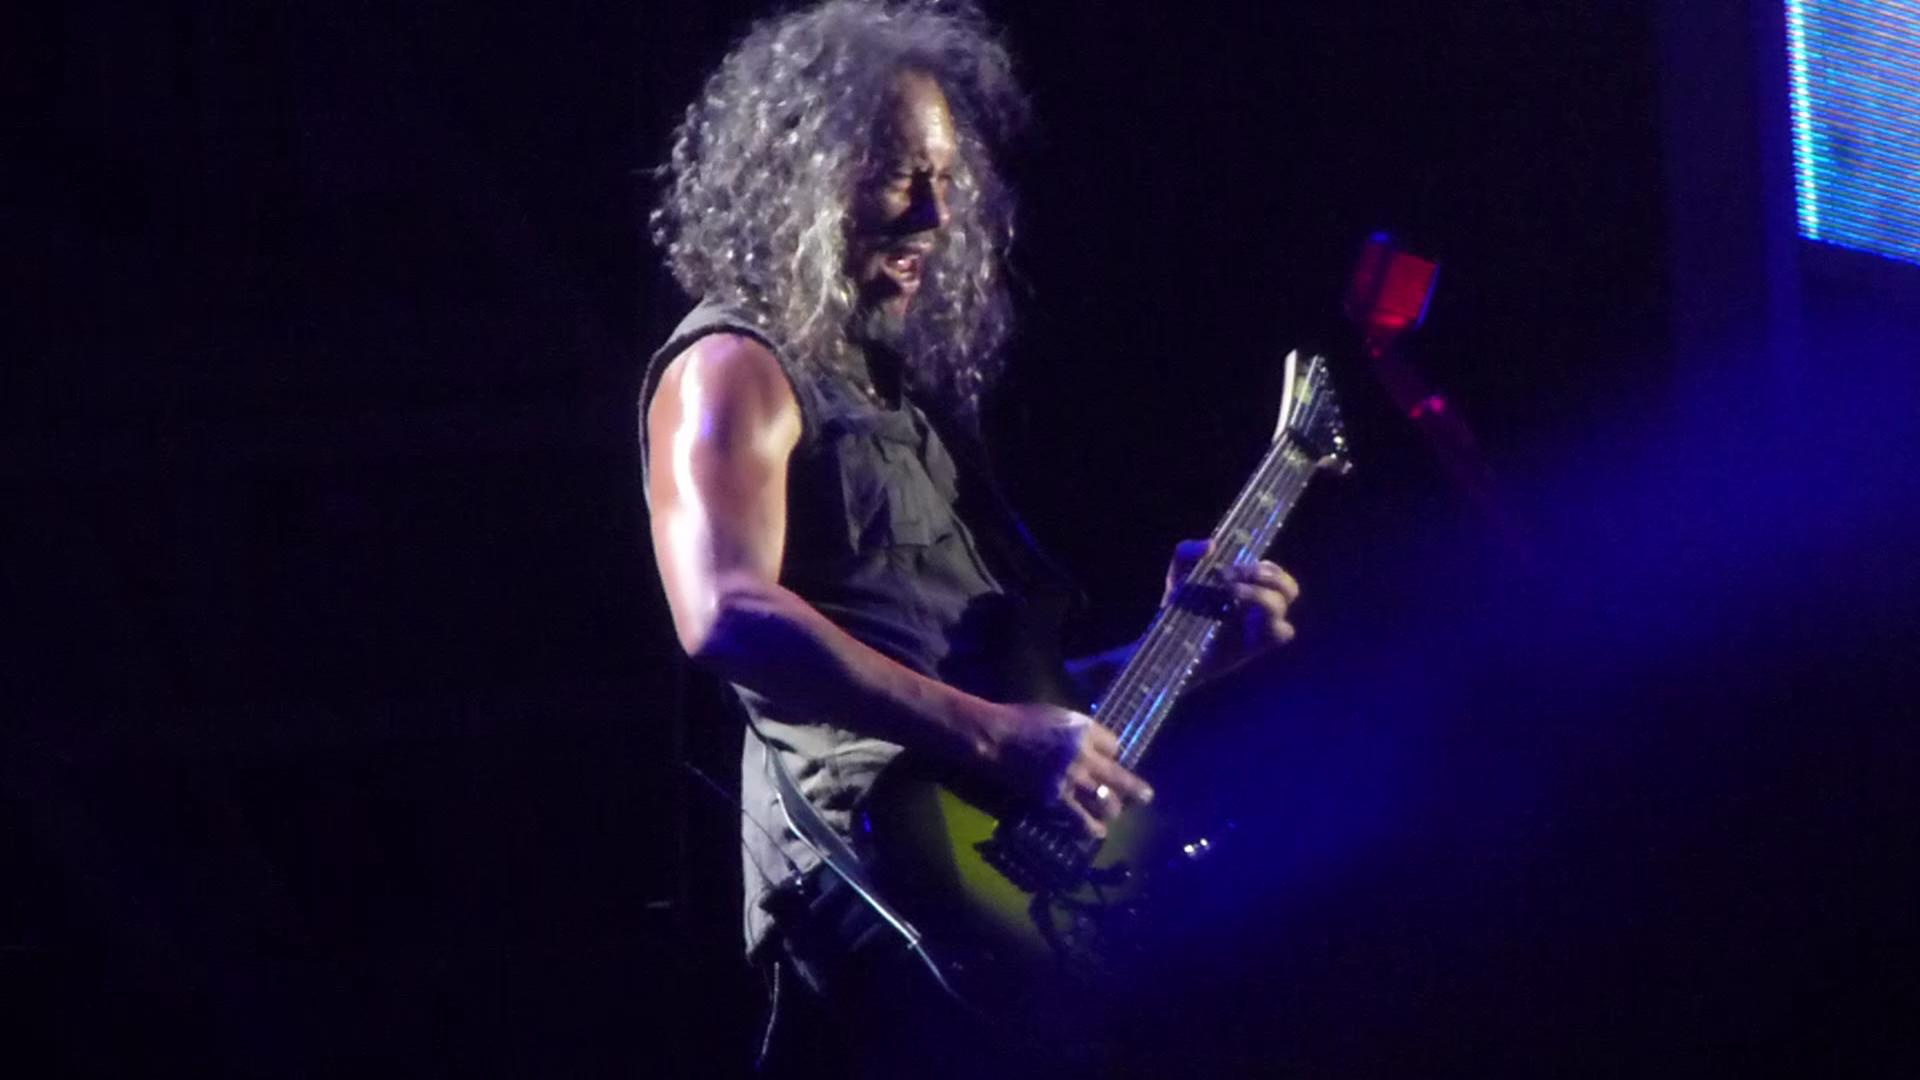 metallica_2013-03-02_adelaideaustralia_screen_71386961812